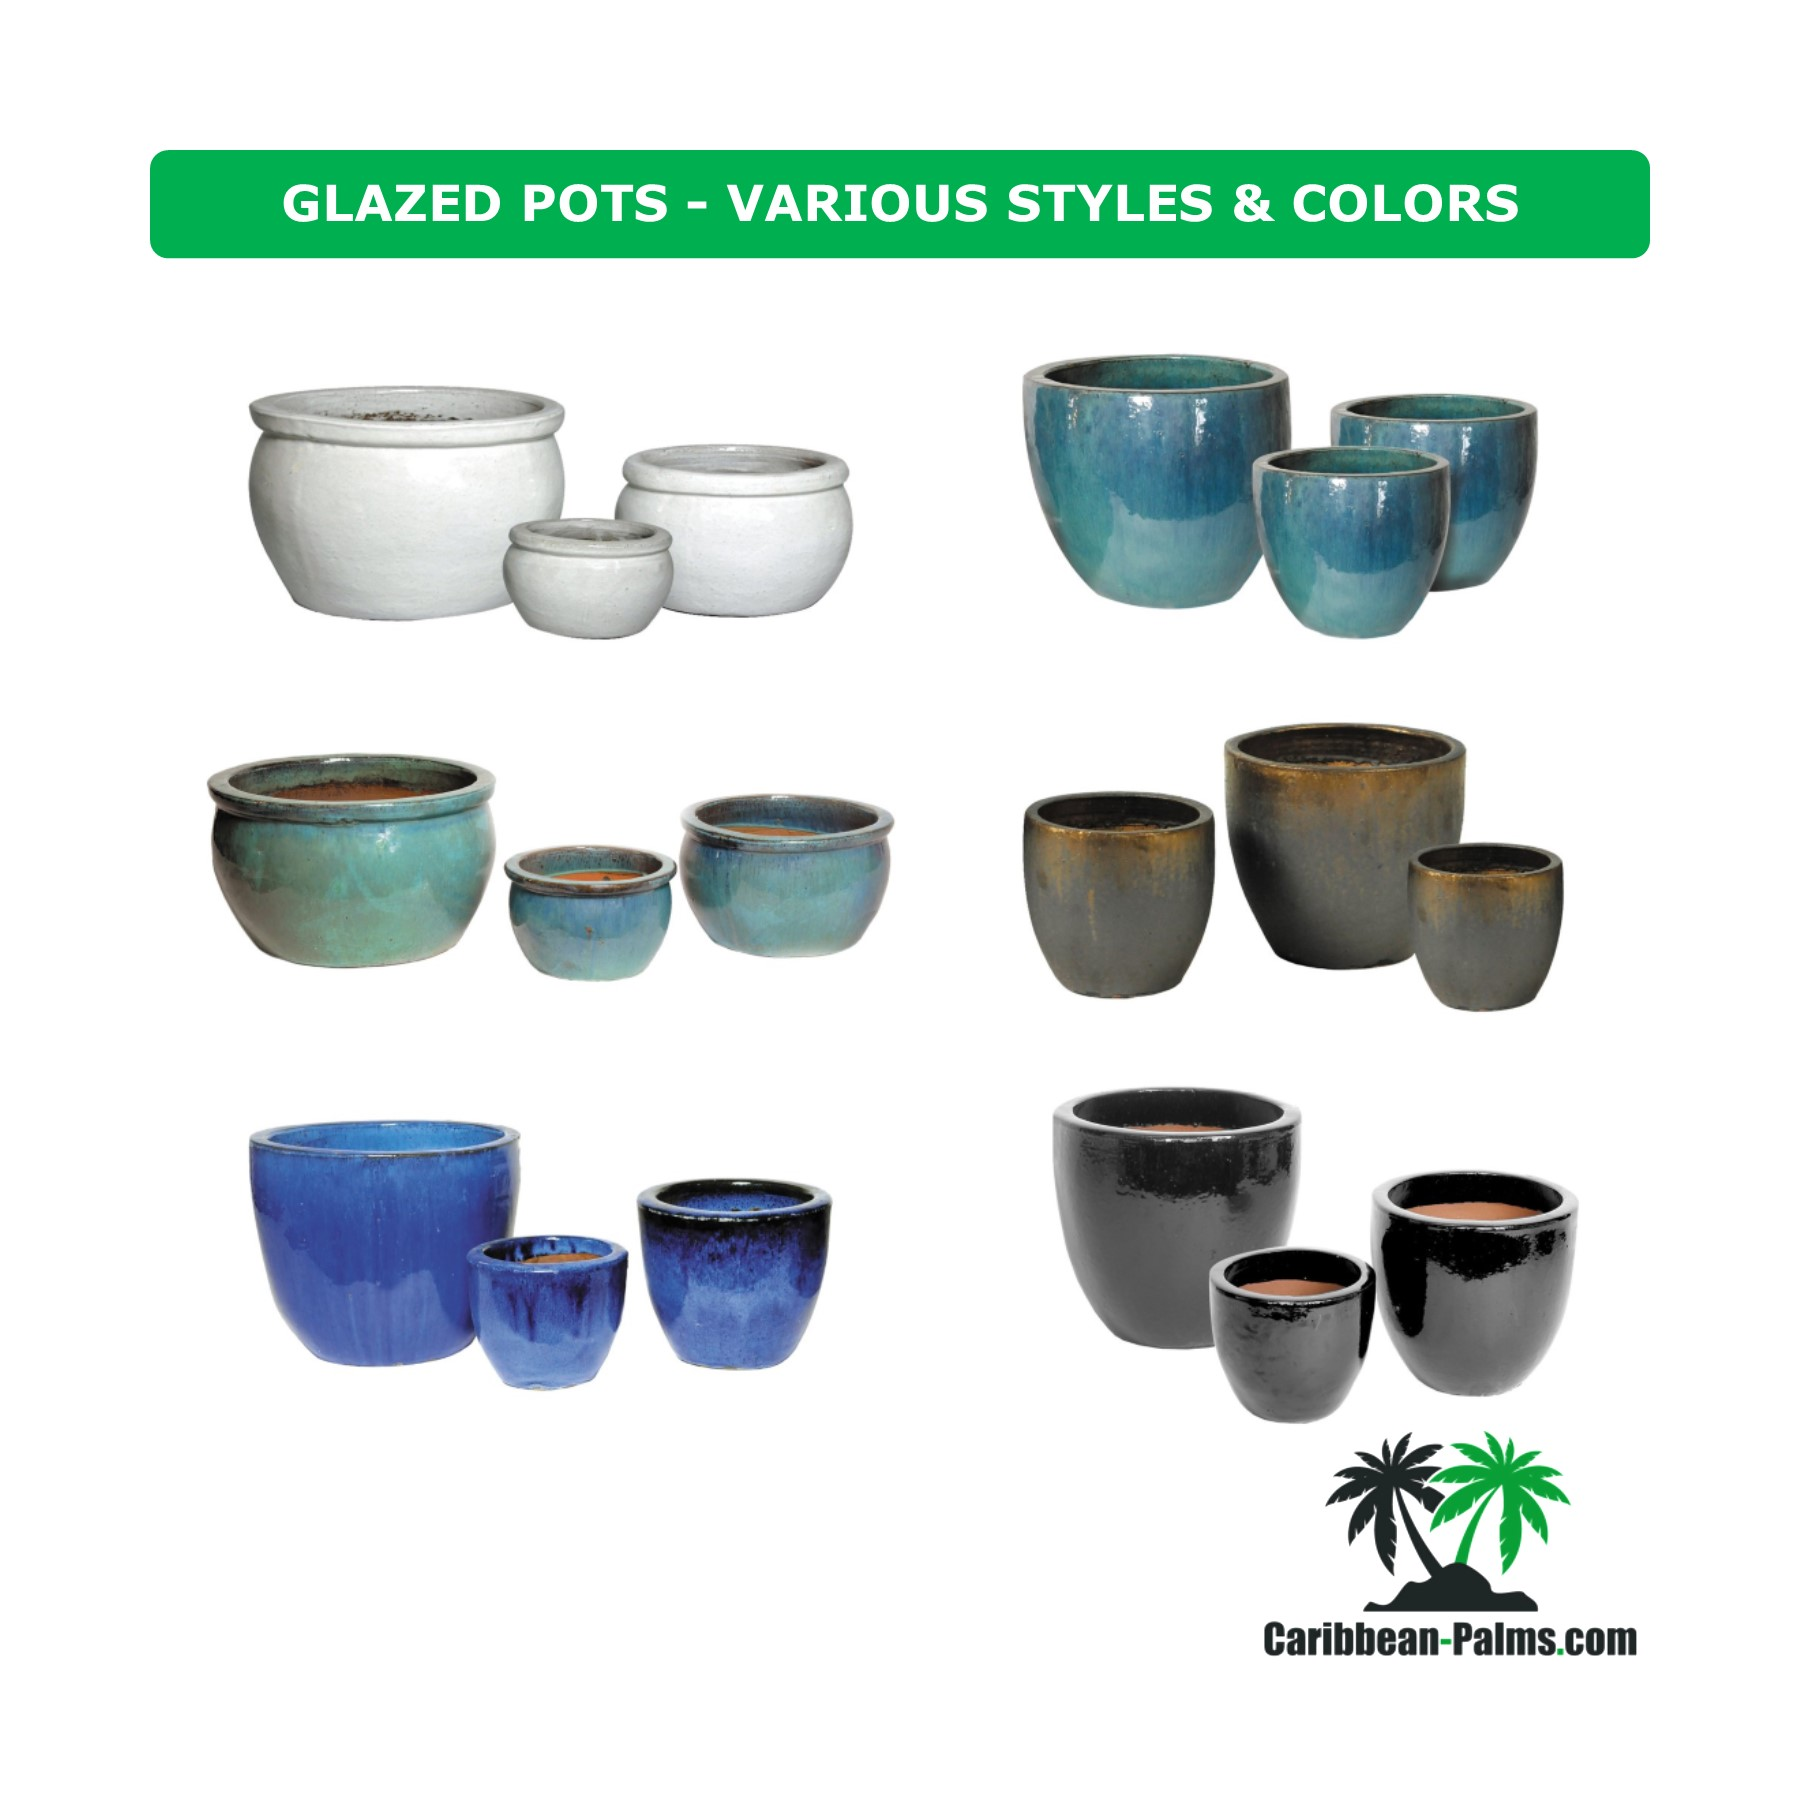 GLAZED POTS VARIOUS STYLES COLORS 3